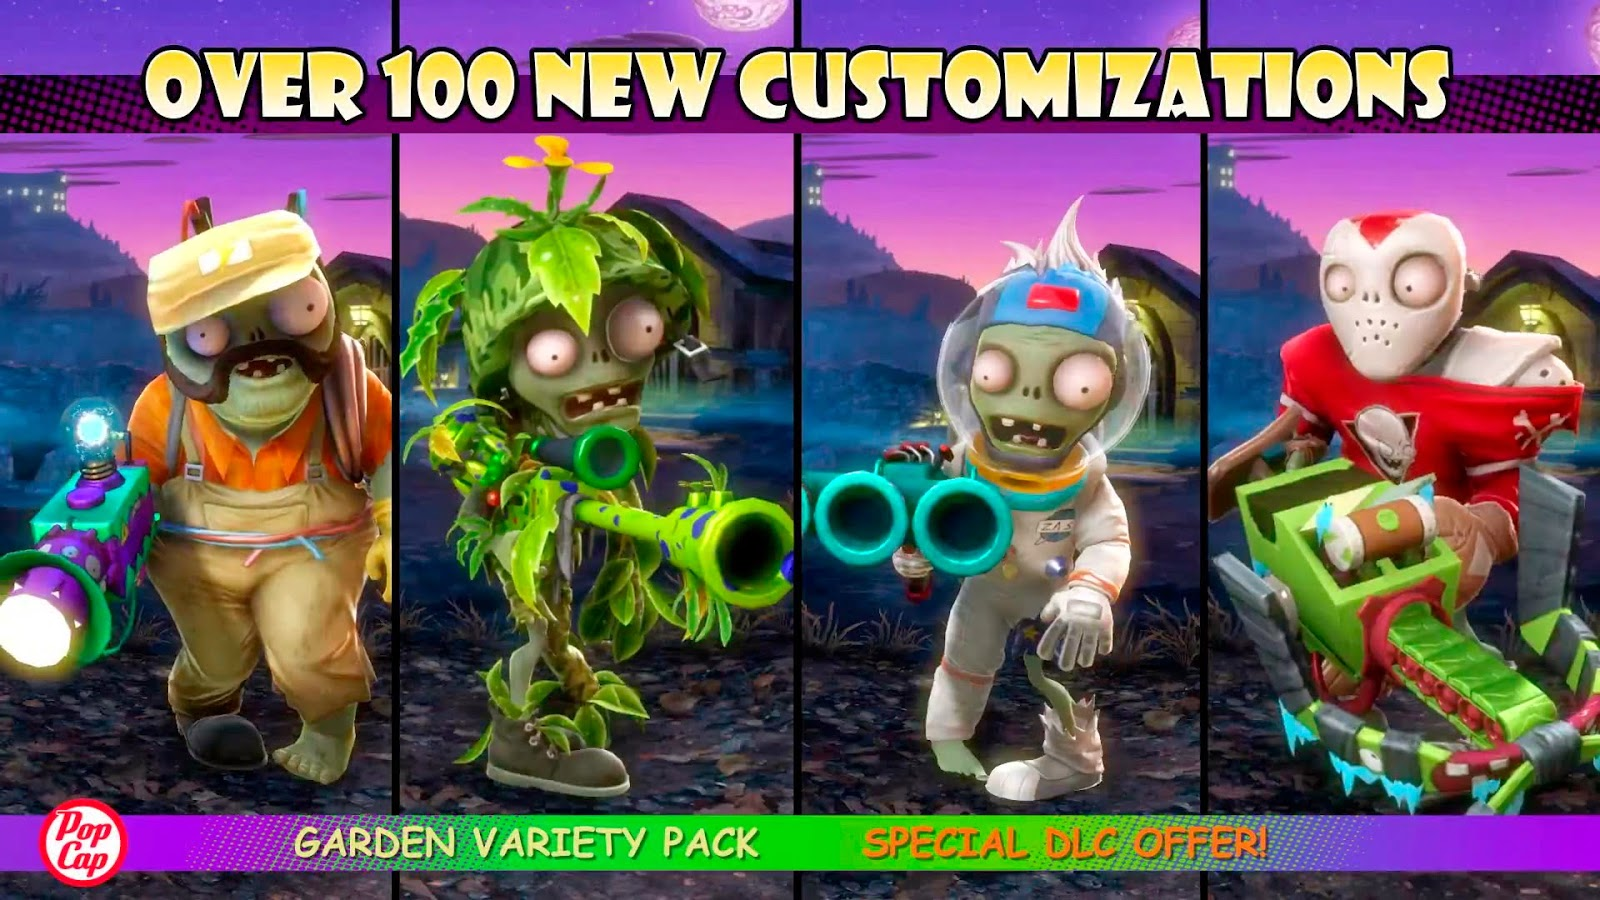 Plants Vs. Zombies: Garden Warfare - Variety Pack